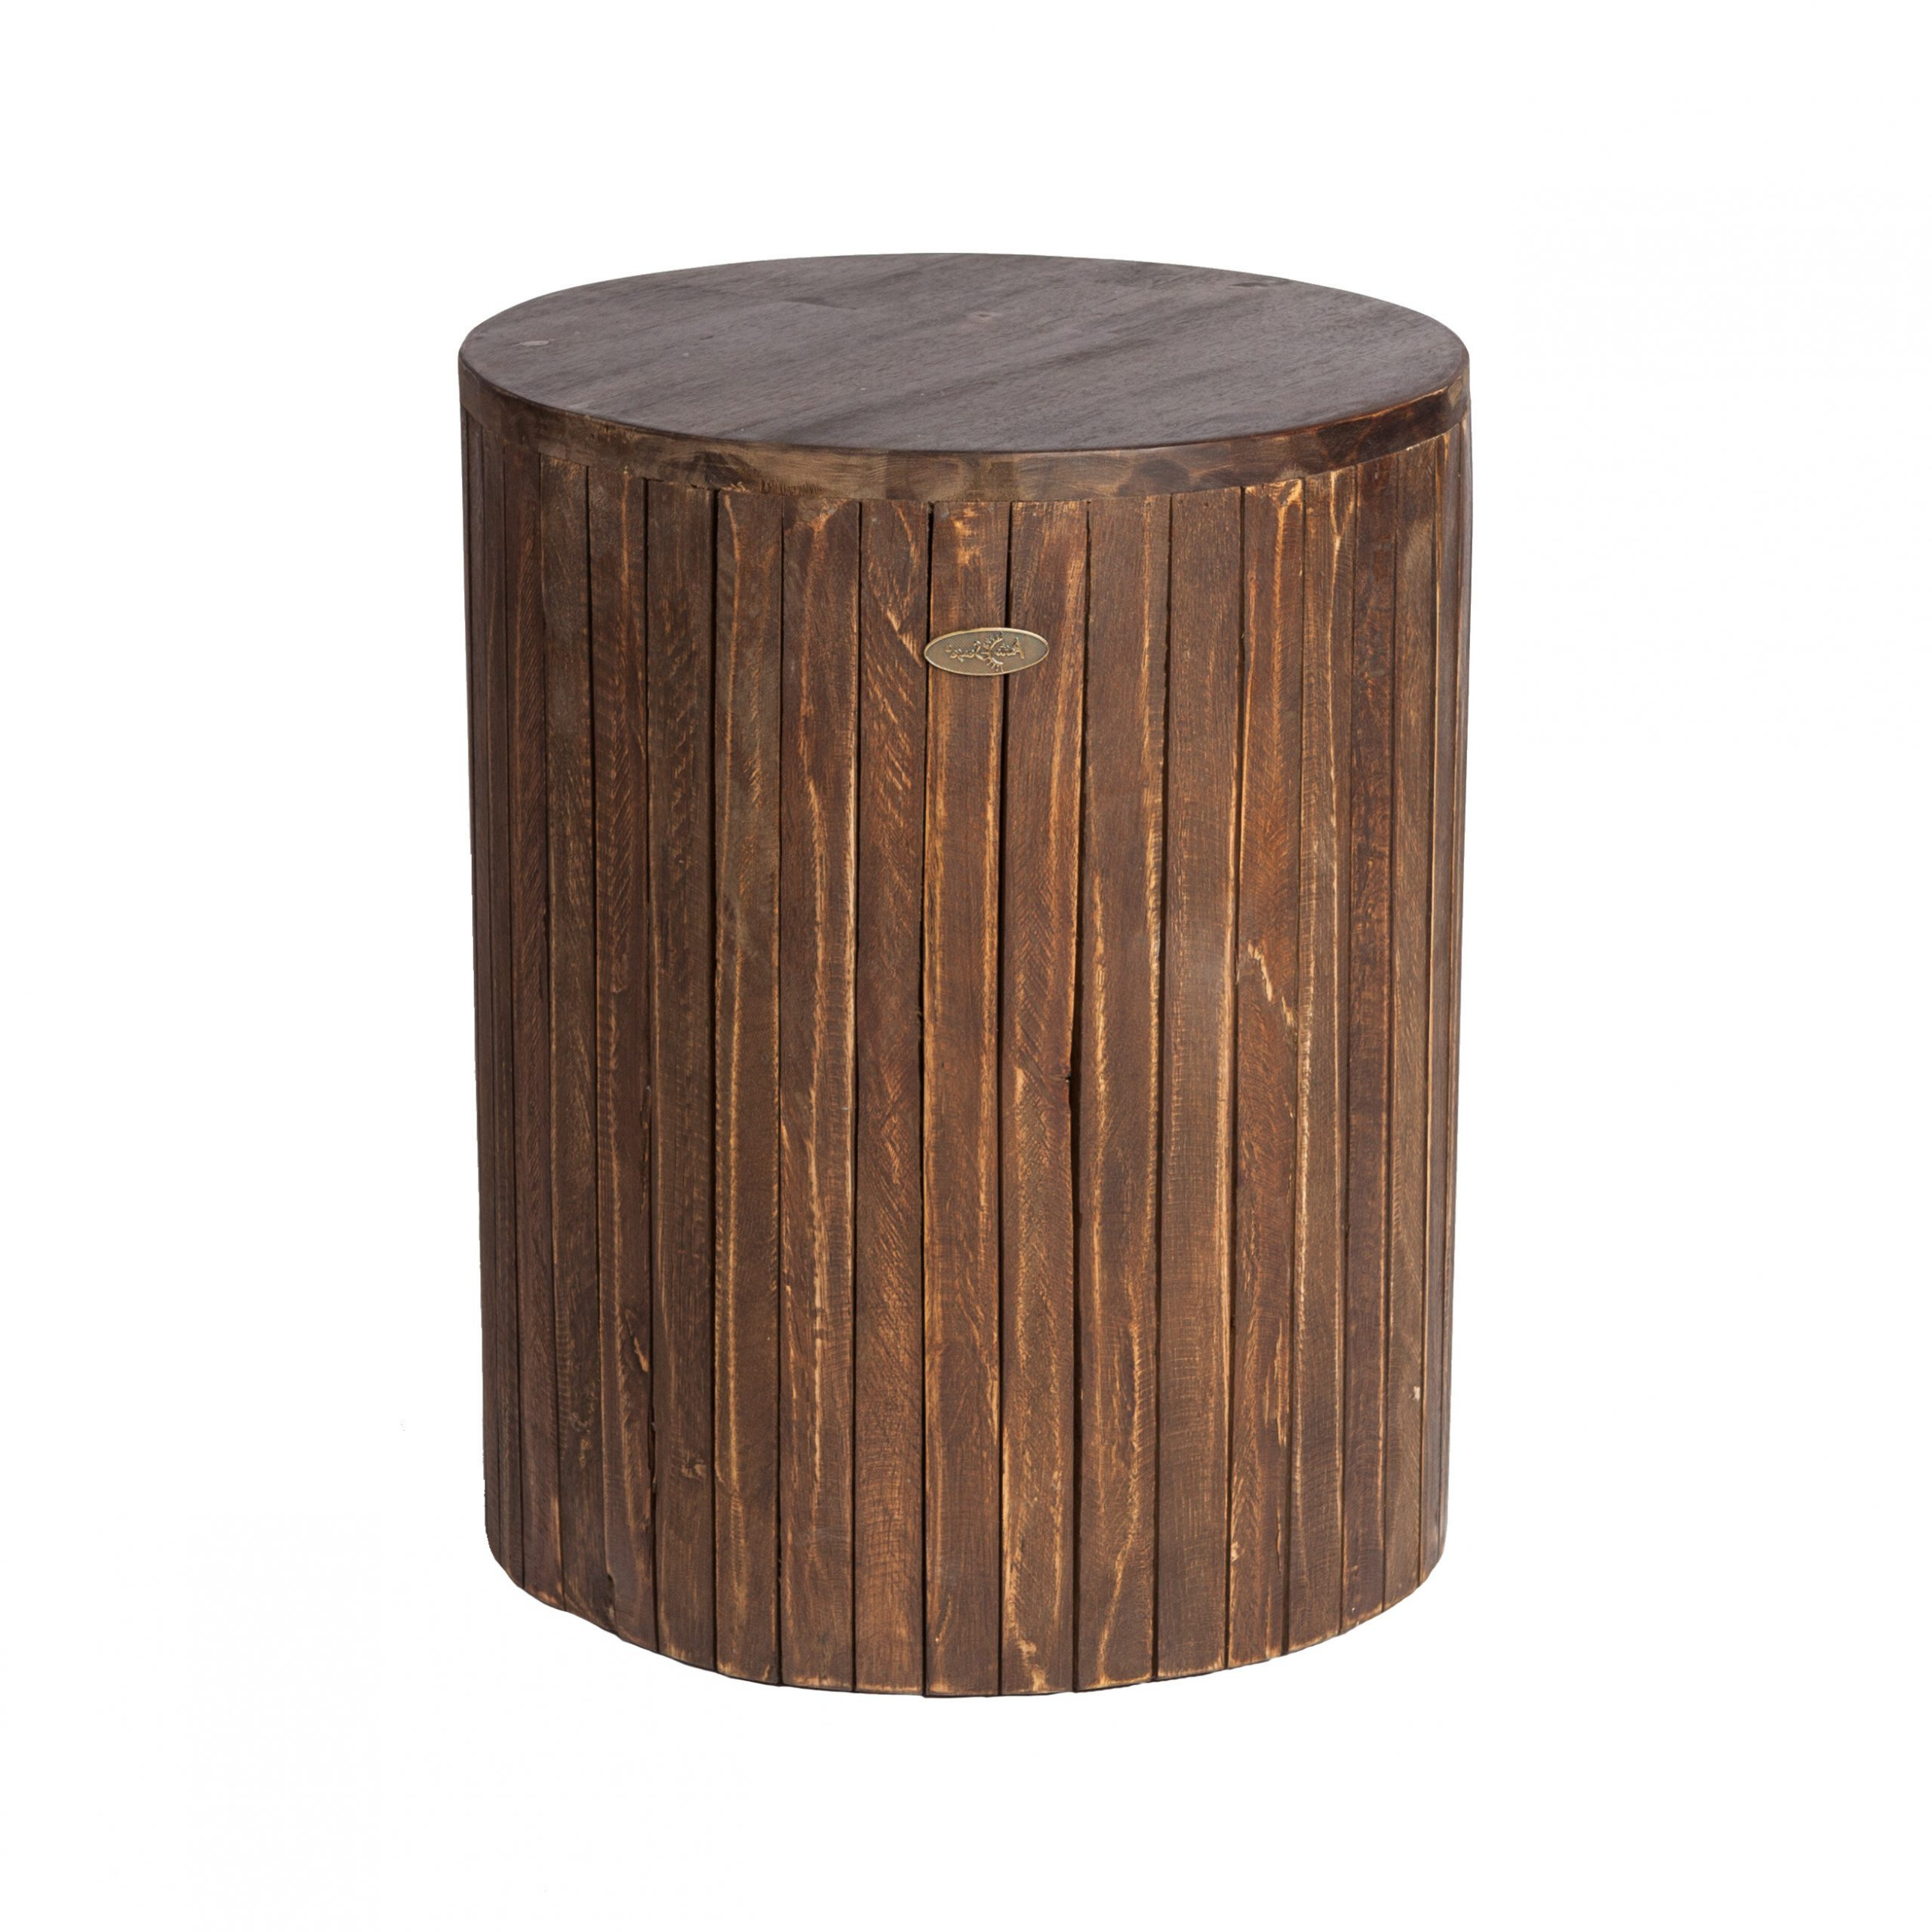 Kenia Garden Stool Pertaining To Well Known Tufan Cement Garden Stools (View 30 of 30)